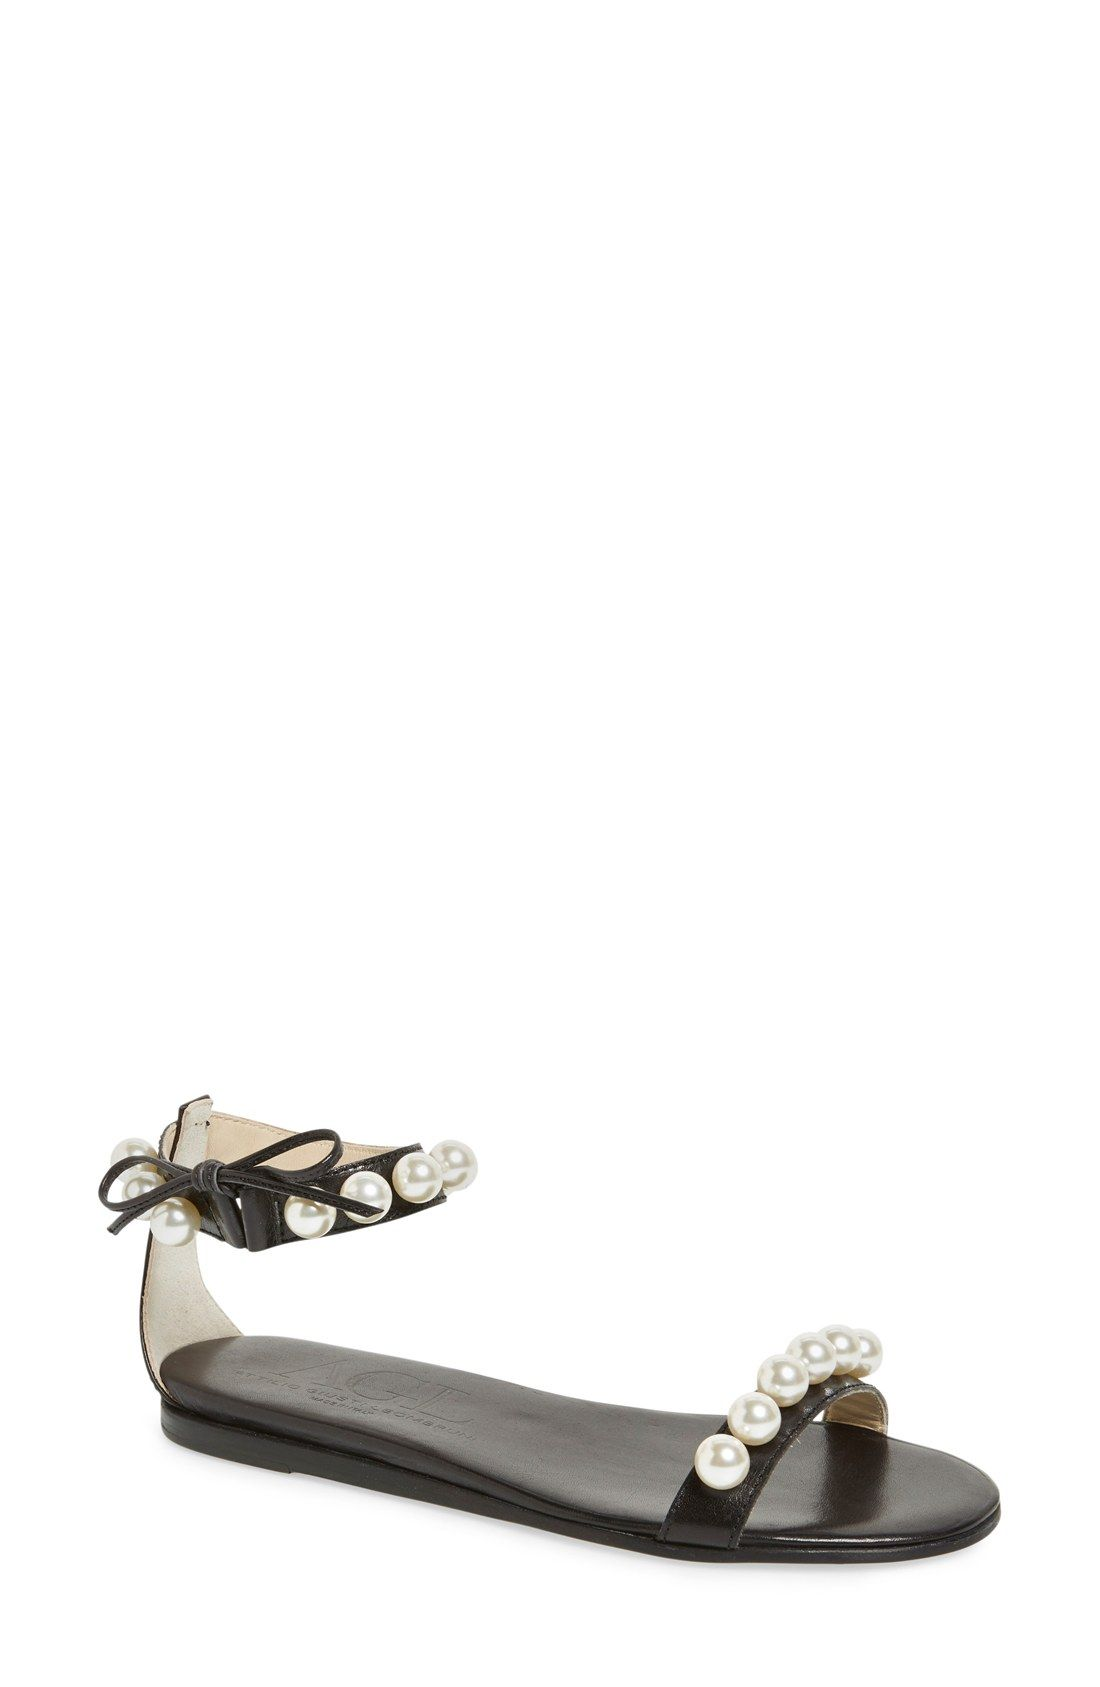 AGL 'Pearl' Ankle Strap Flat Sandal (Women | Beaded sandals